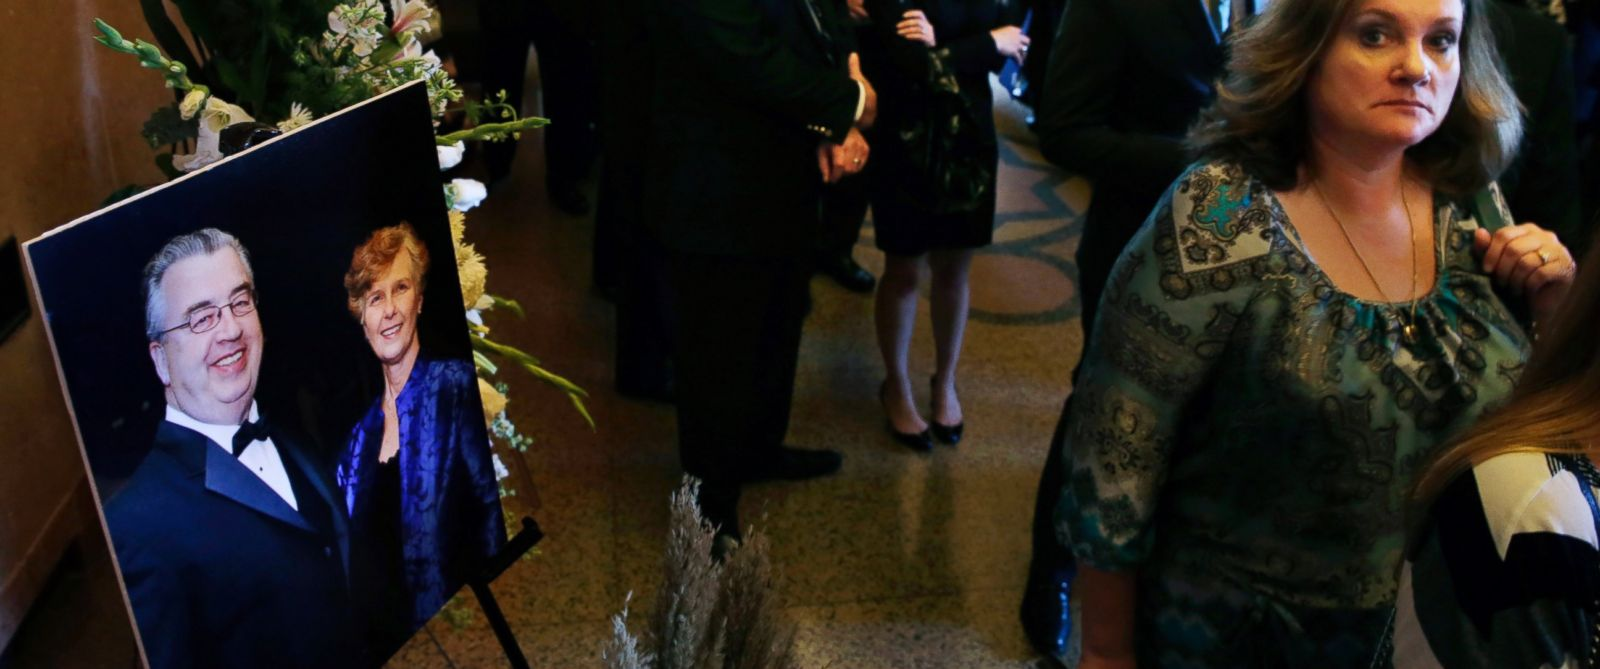 PHOTO: People file past a portrait of John and Joyce Sheridan, into a memorial service for the couple at the War Memorial, Oct. 7, 2014, in Trenton, N.J.